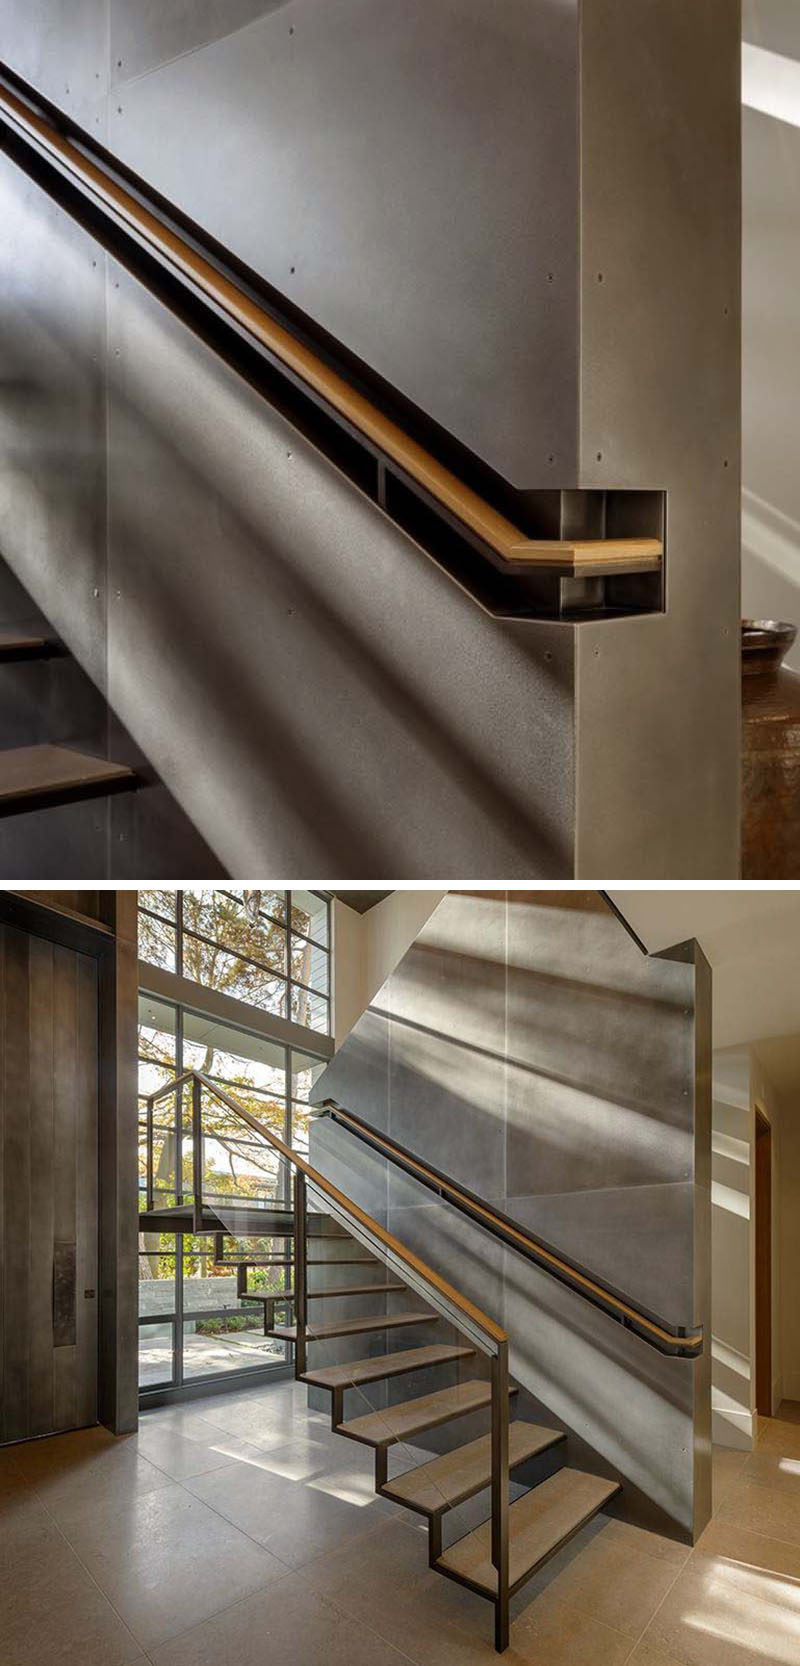 Stair Design Ideas - 9 Examples Of Built-In Handrails // This wood and steel handrail is built into a section of the wall for a more industrial look. #BuiltInHandrail #HandrailIdeas #HandrailDesign #StairDesign #Handrails